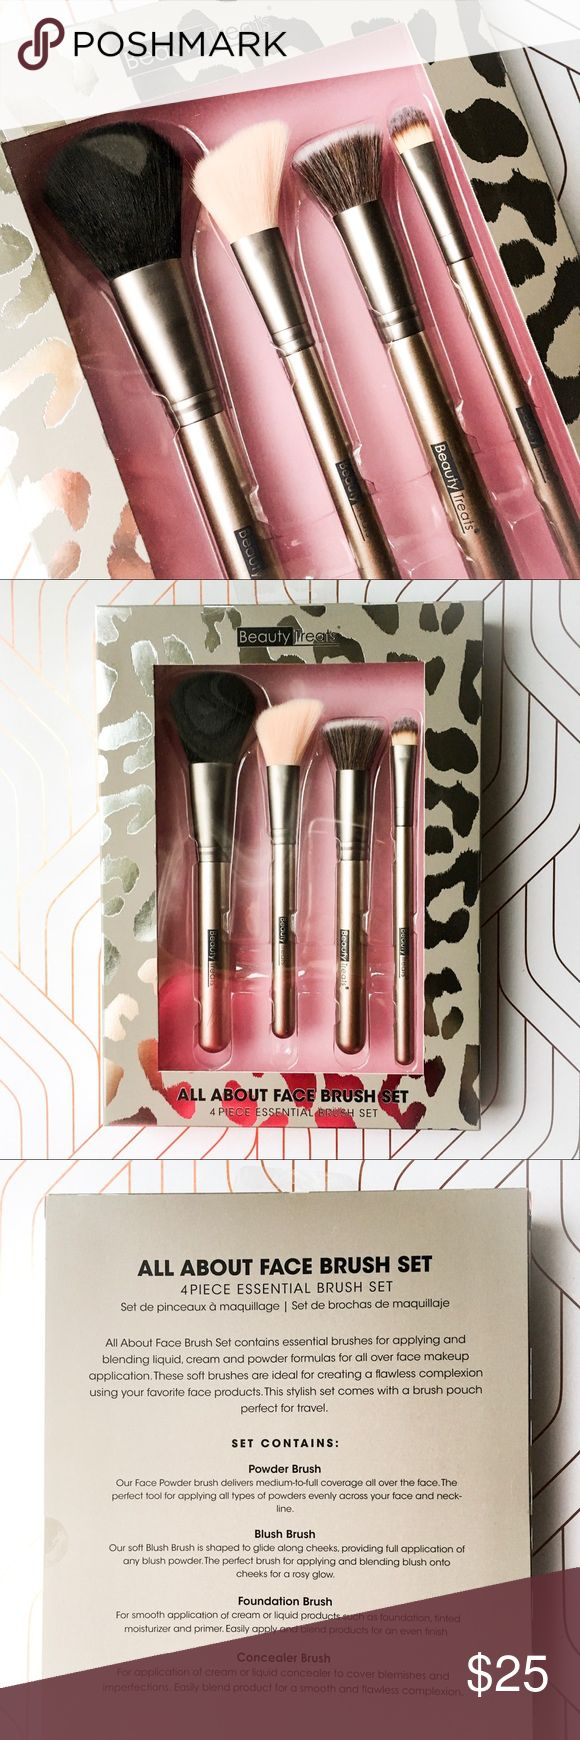 🆕the all about face brush set • style name: the all about face brush set • color: silver/mixed natural bristles • 4 piece essential makeup brush set • includes powder, blush, foundation, & concealer brushes • condition: brand new boutique item ____________________________________________________ ✅ make an offer!     ✅ i bundle! ✅ posh compliant closet ⛔️ no trades 🛍 boutique item Makeup Brushes & Tools